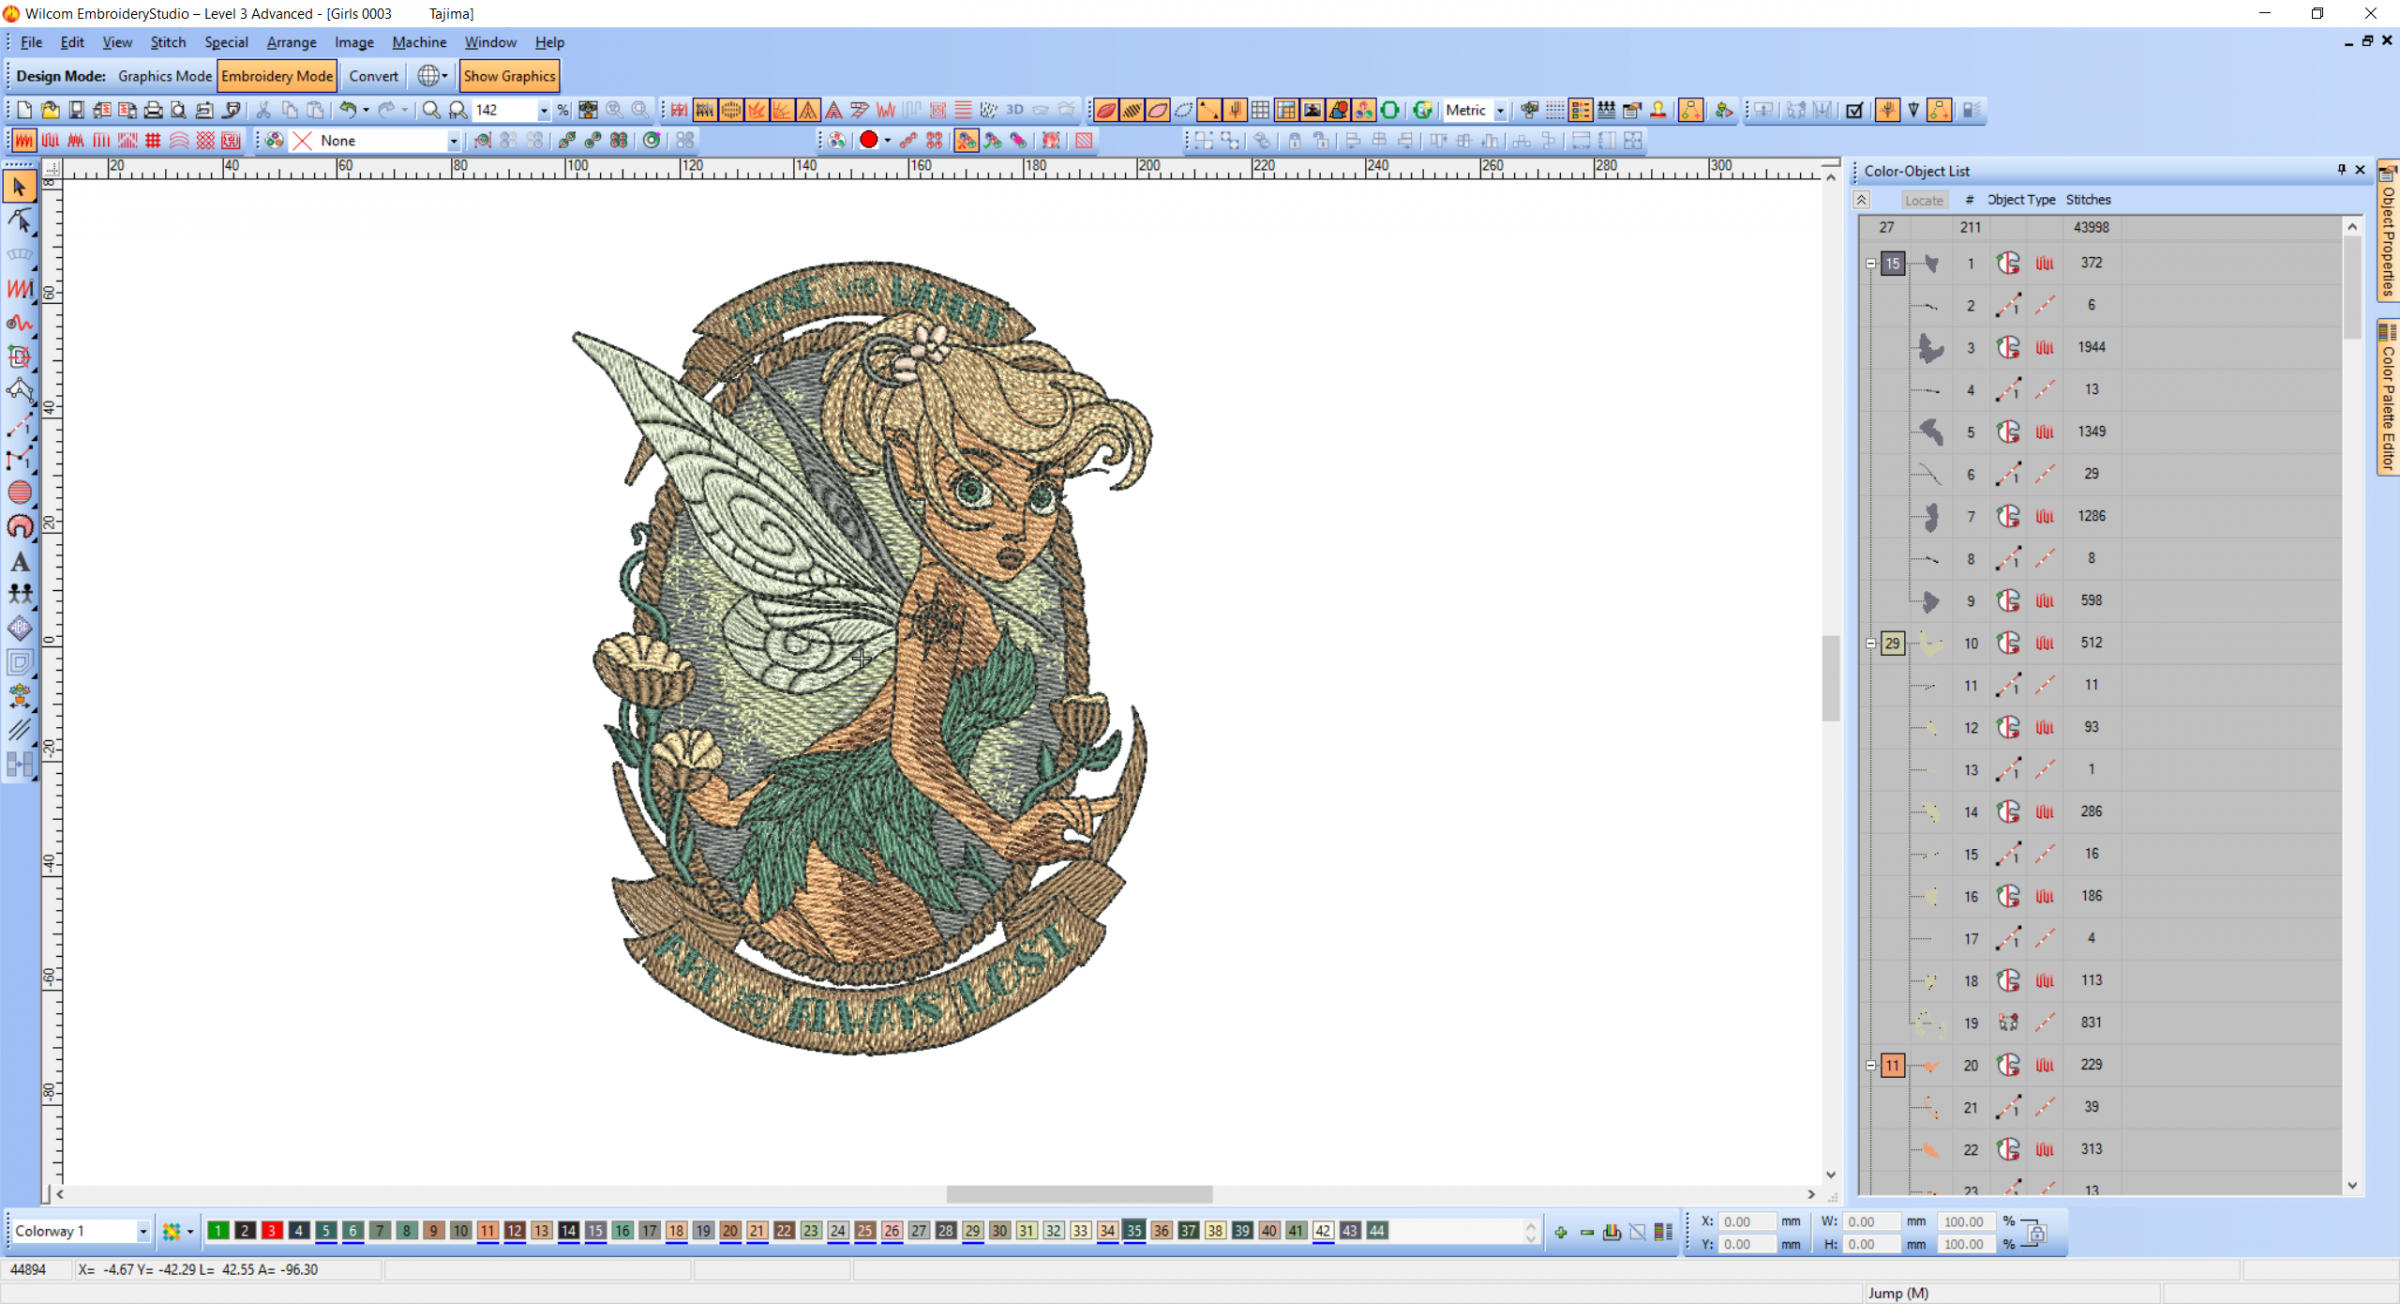 Forest tinkerbell embroidery design in Wilcom software